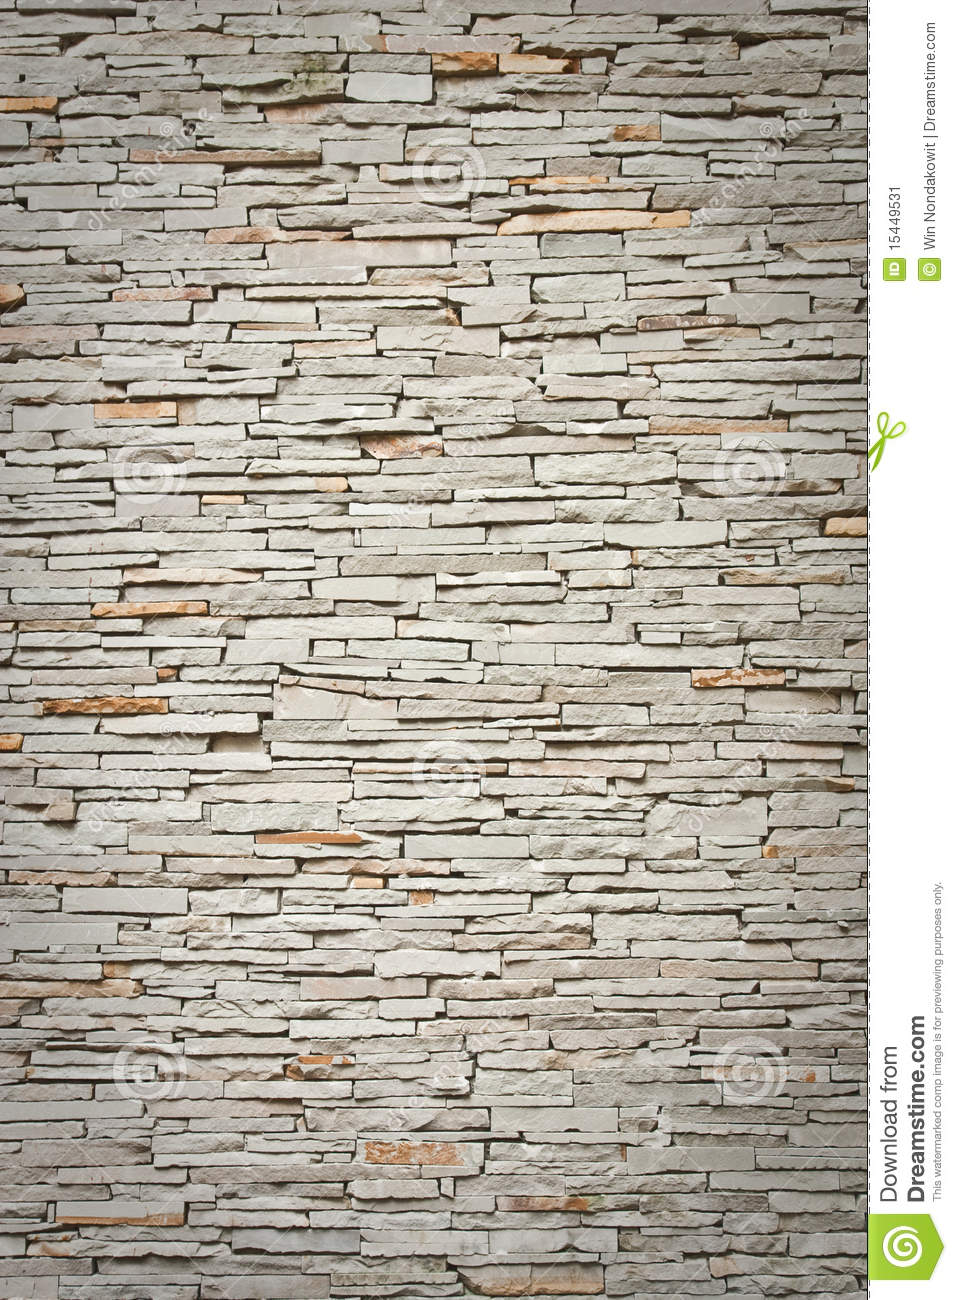 Office Accent Wall Modern Brick Wall Stock Image - Image: 15449531